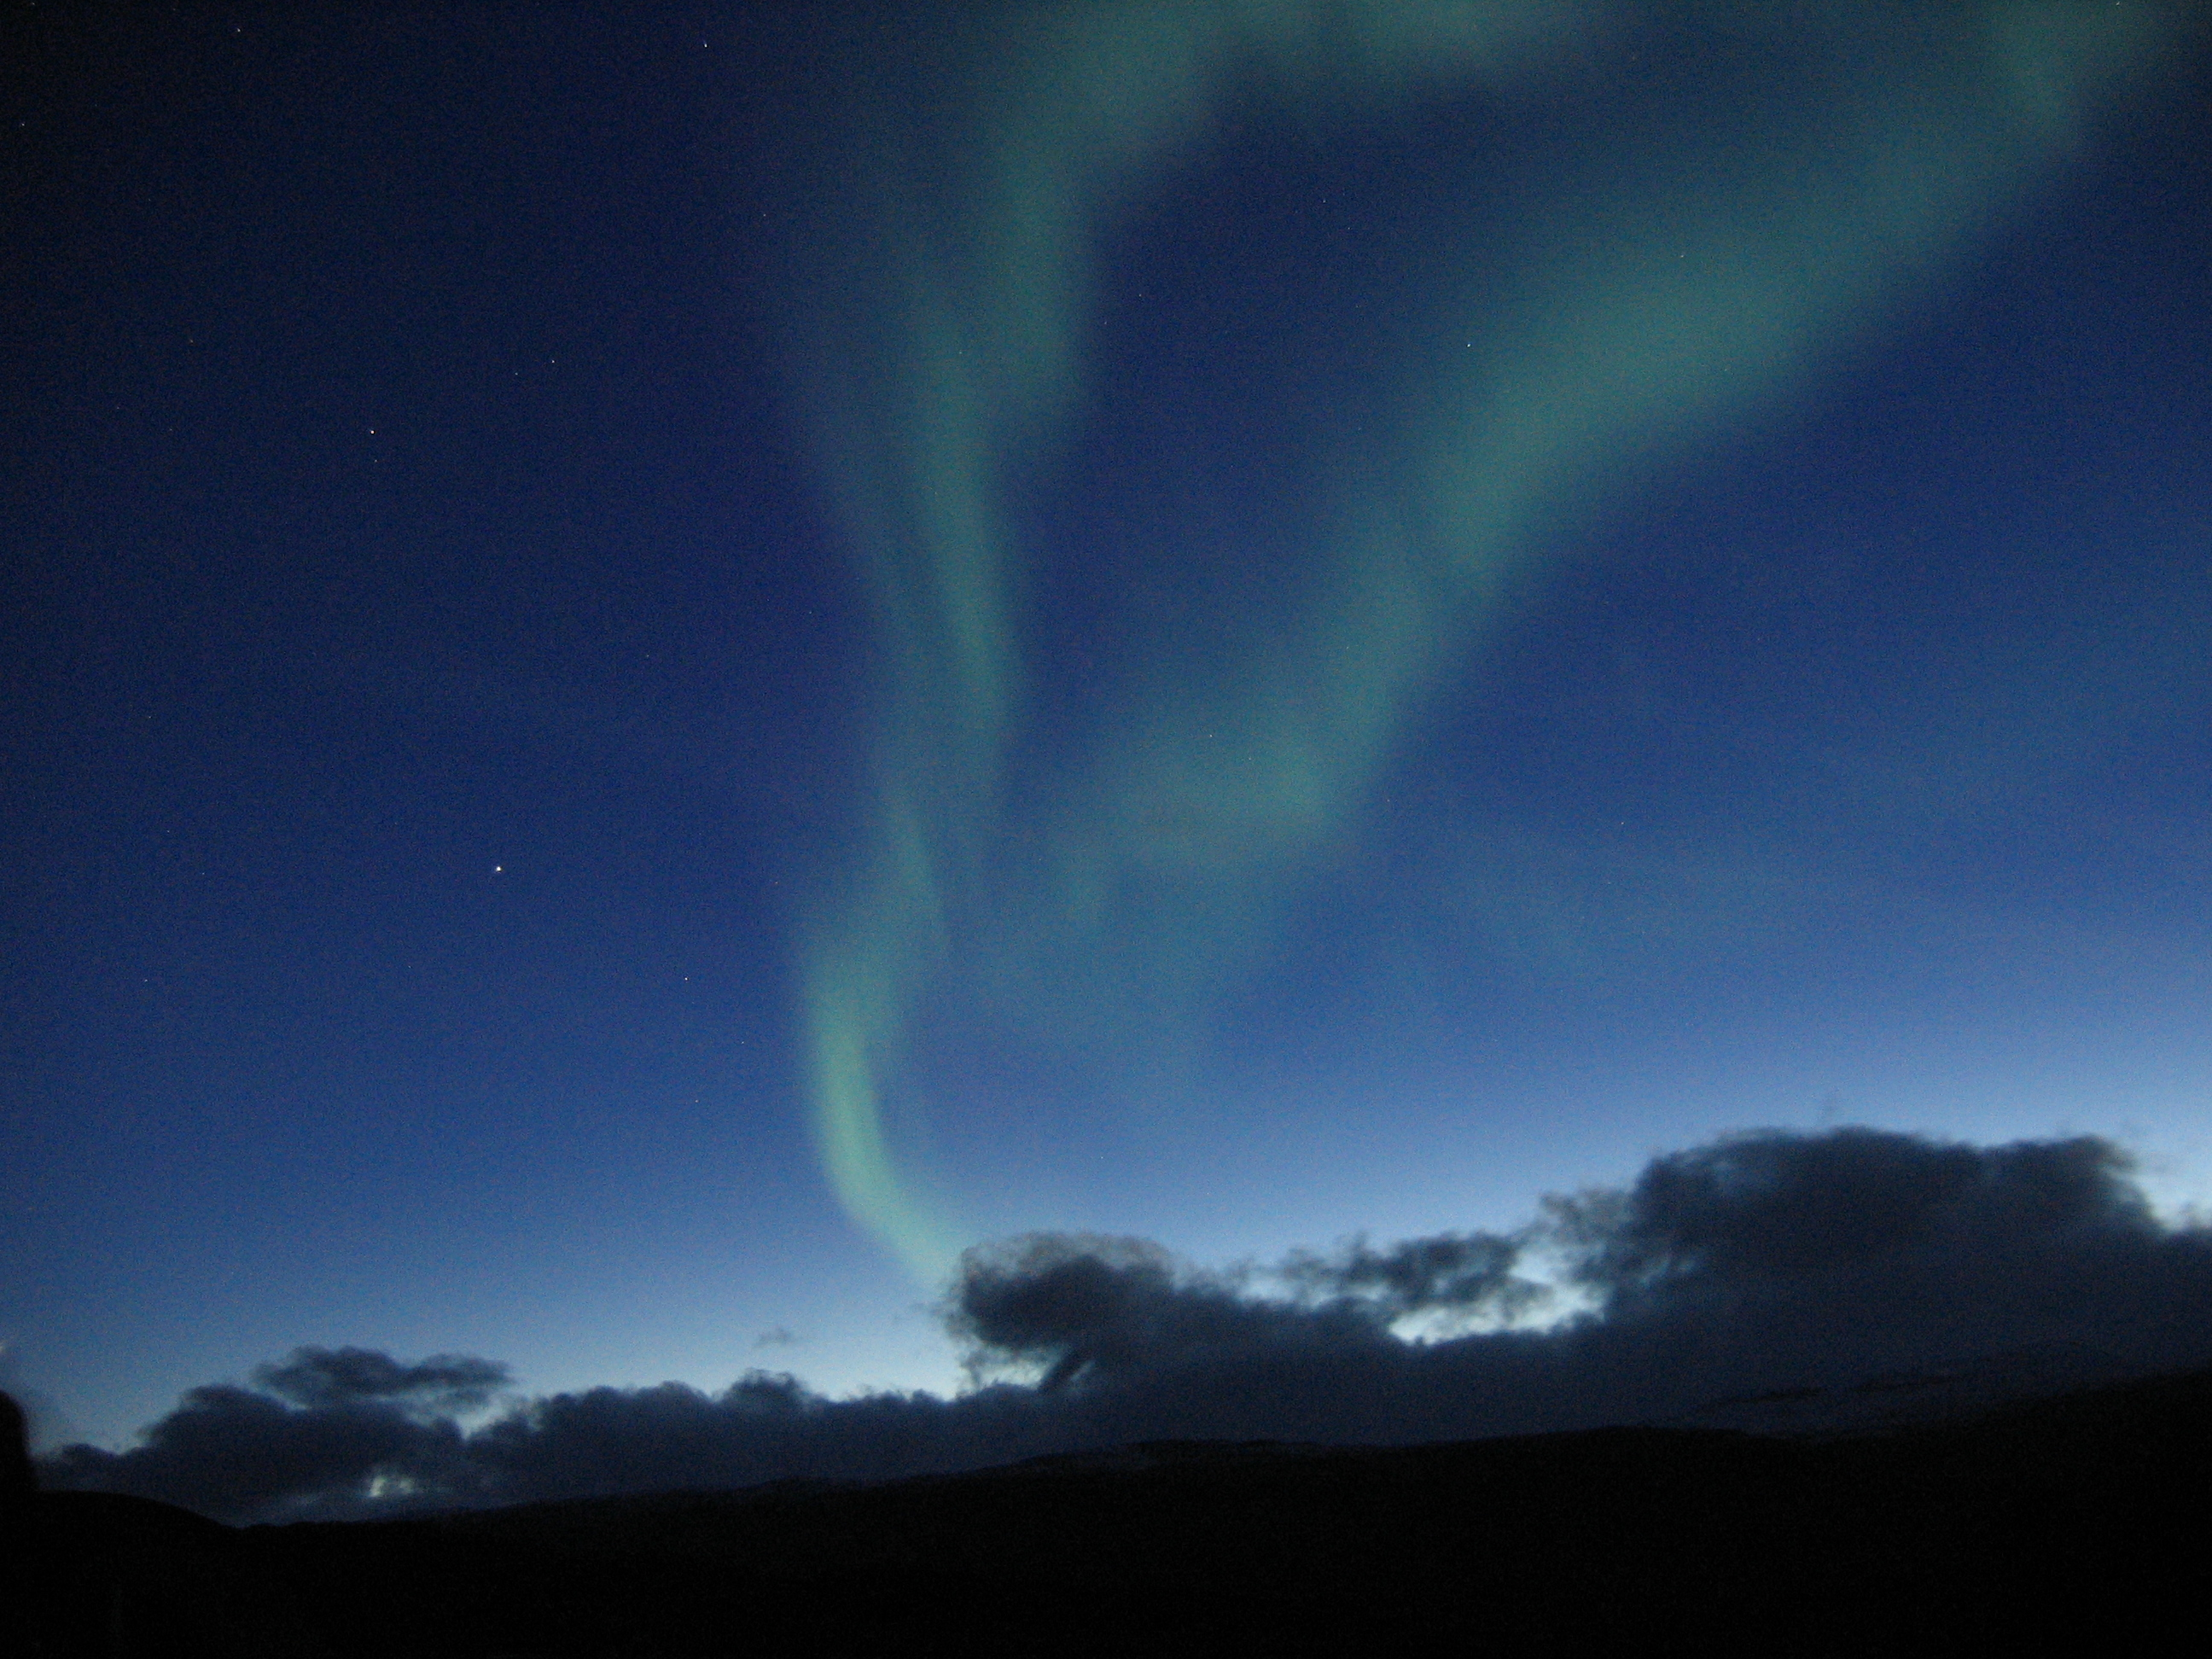 http://upload.wikimedia.org/wikipedia/commons/2/21/Aurora_near_Abisko%2C_Sweden%2C_3.jpg